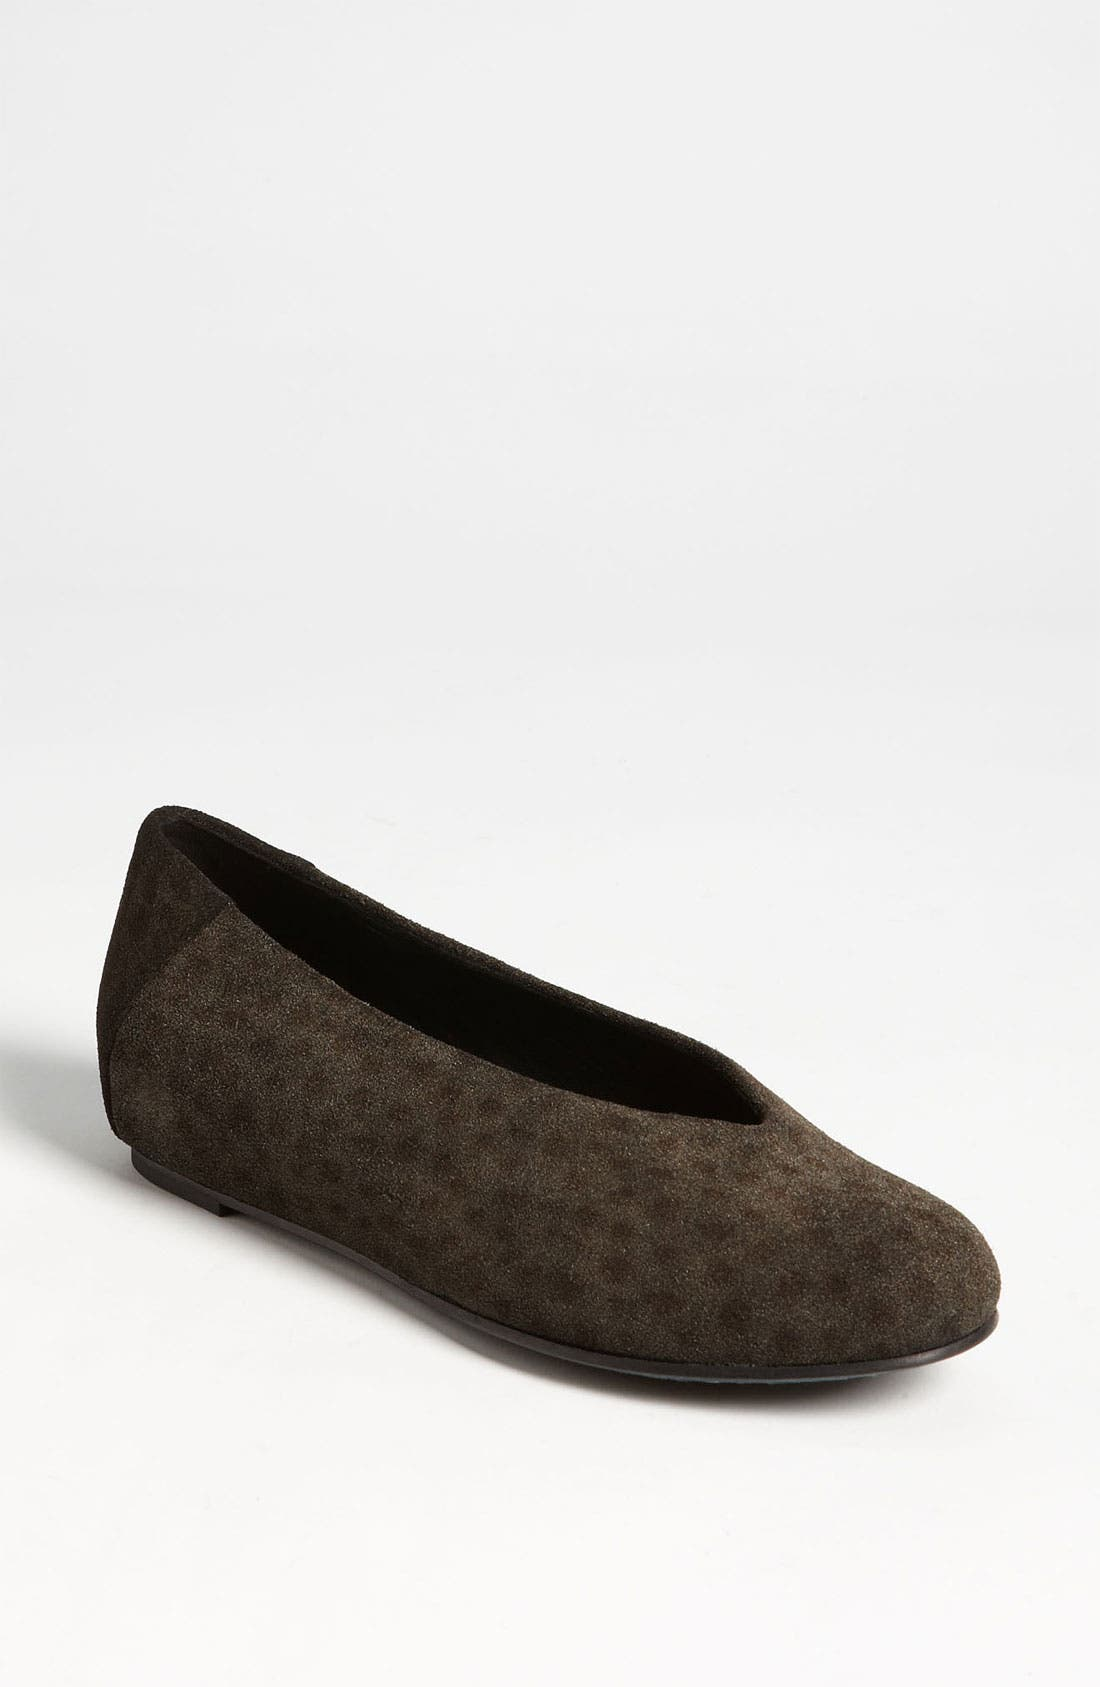 Main Image - Eileen Fisher 'Patch' Flat